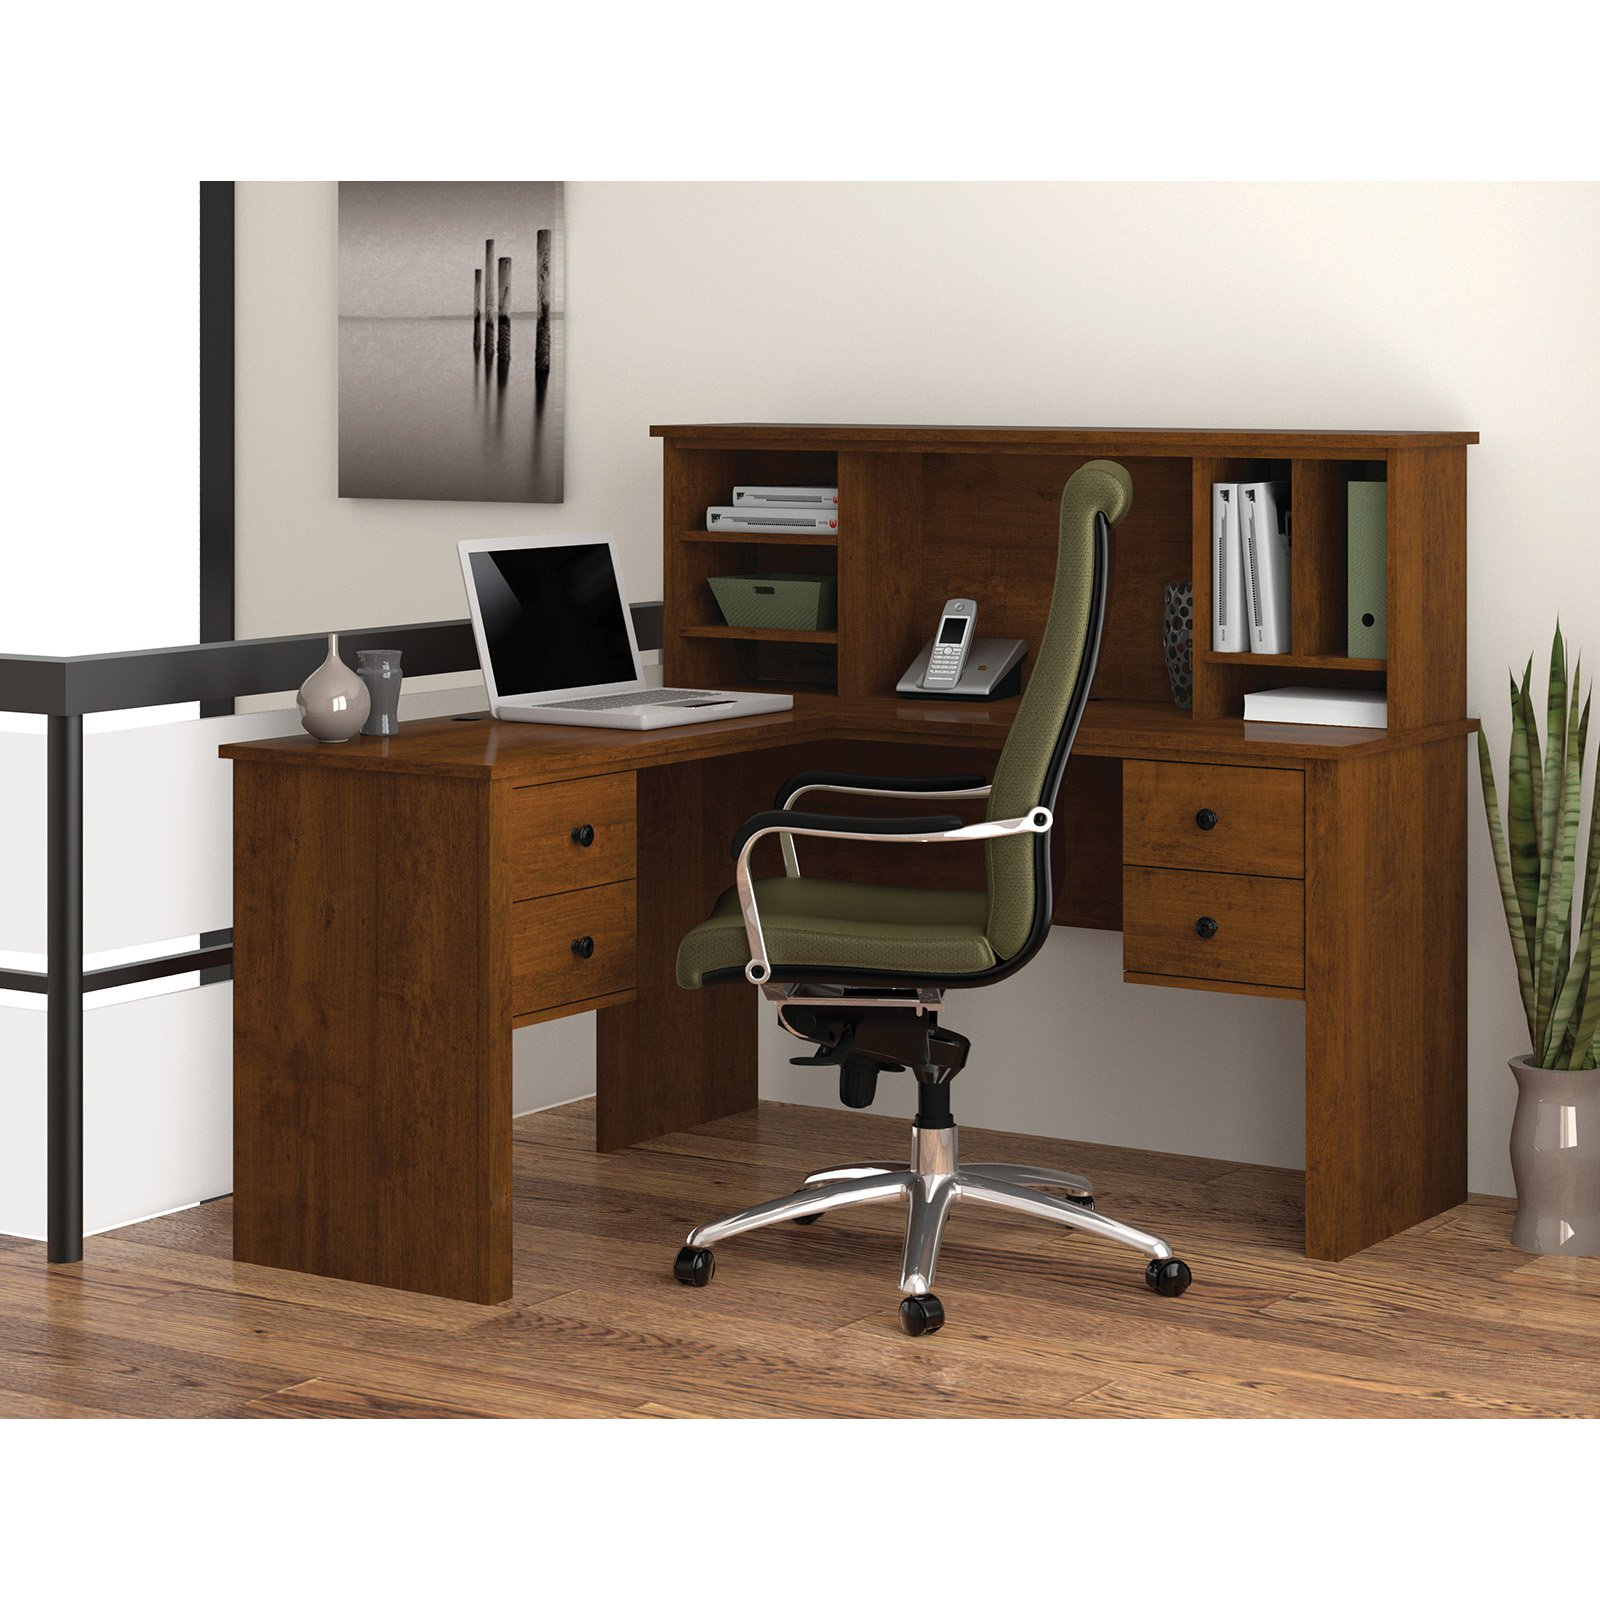 Somerville L Shaped Desk With Hutch In Tuscany Brown   Walmart.com